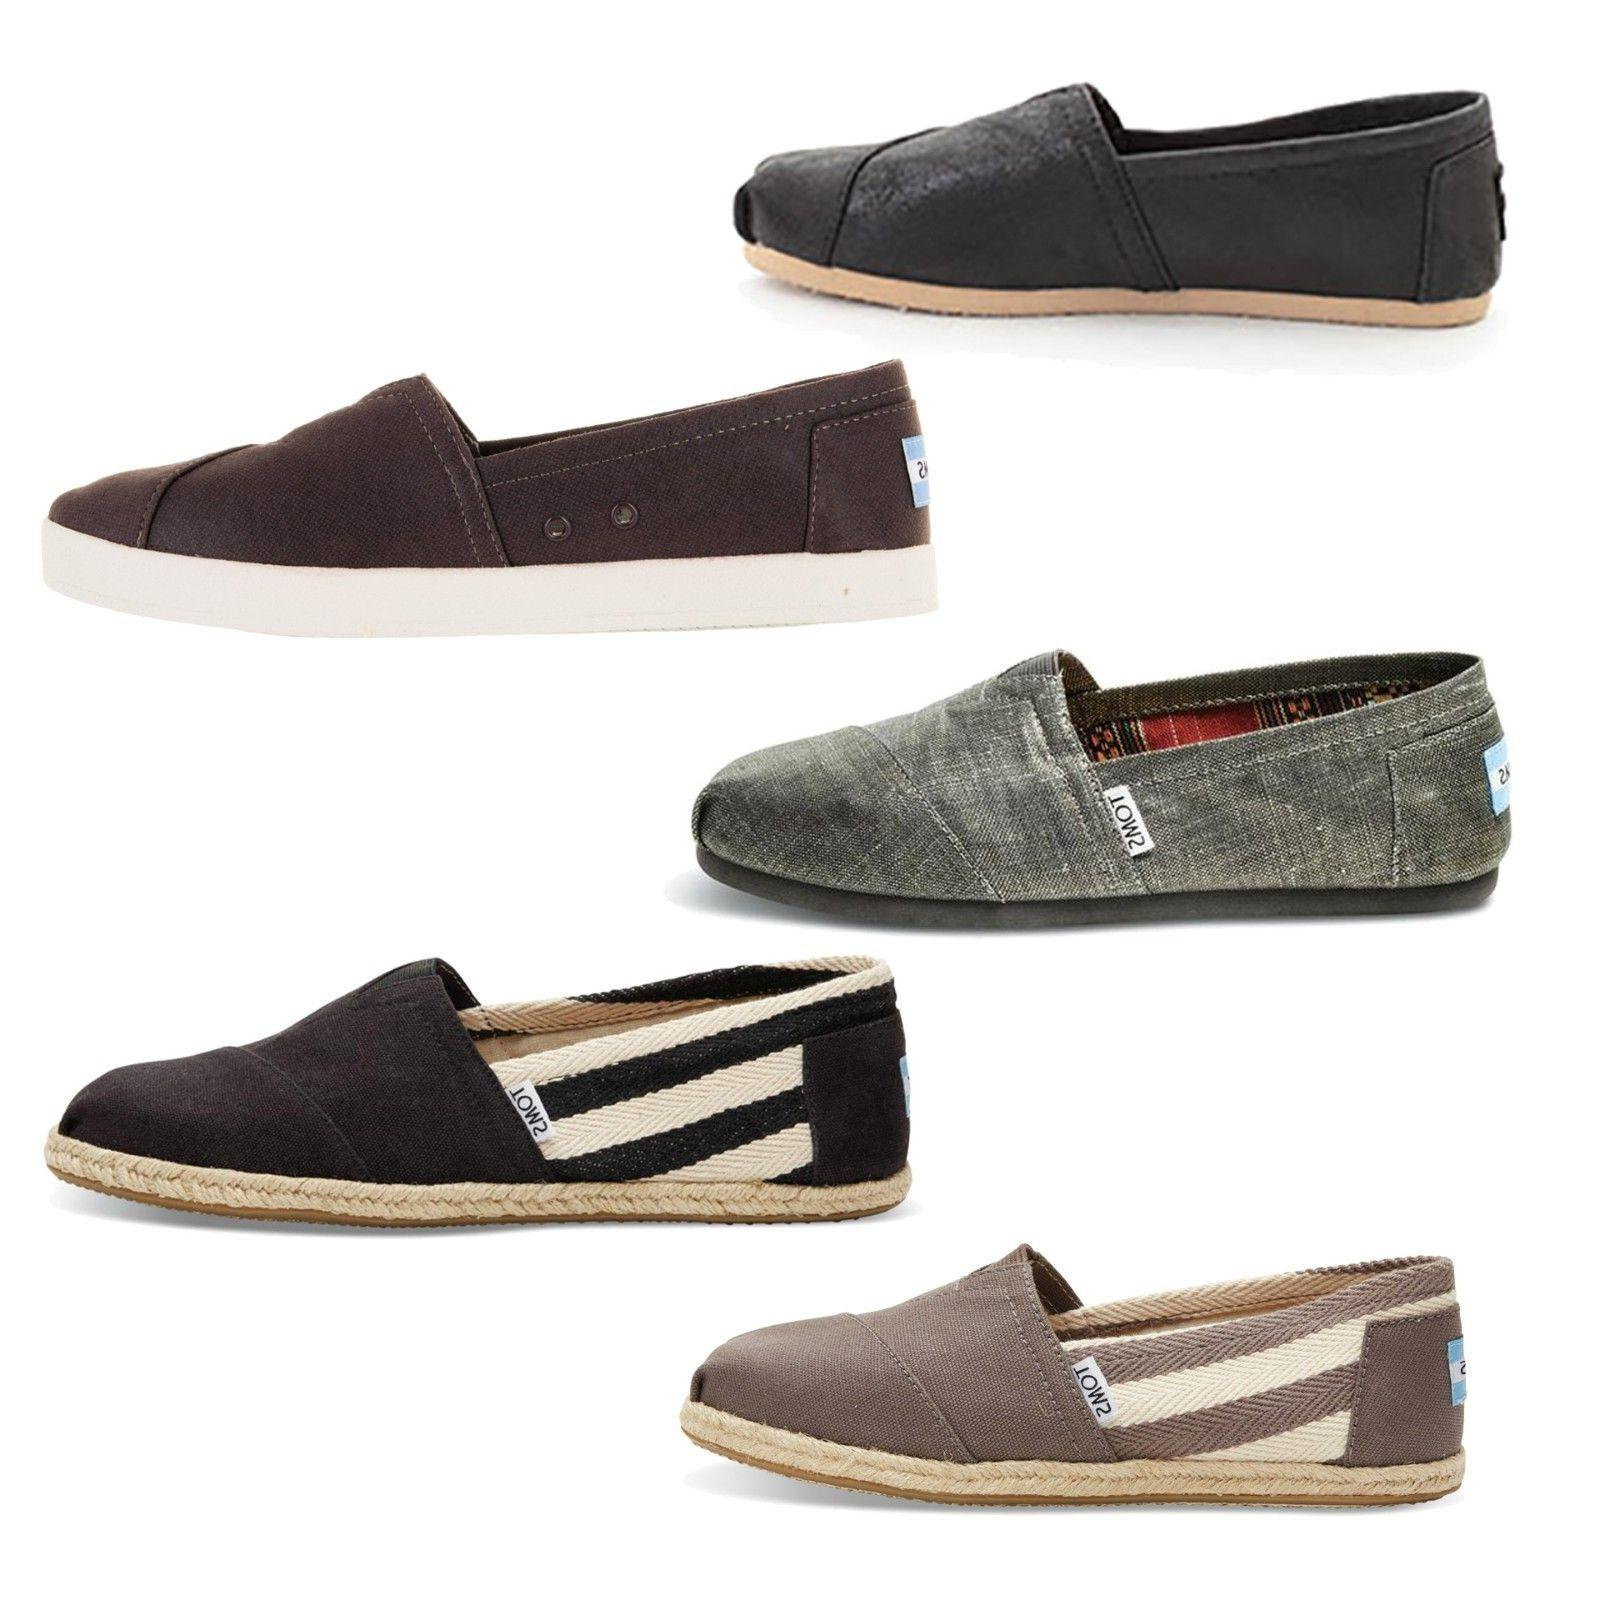 Toms Classics Women's Casual Slip-on Flats / Avalon Sneaker